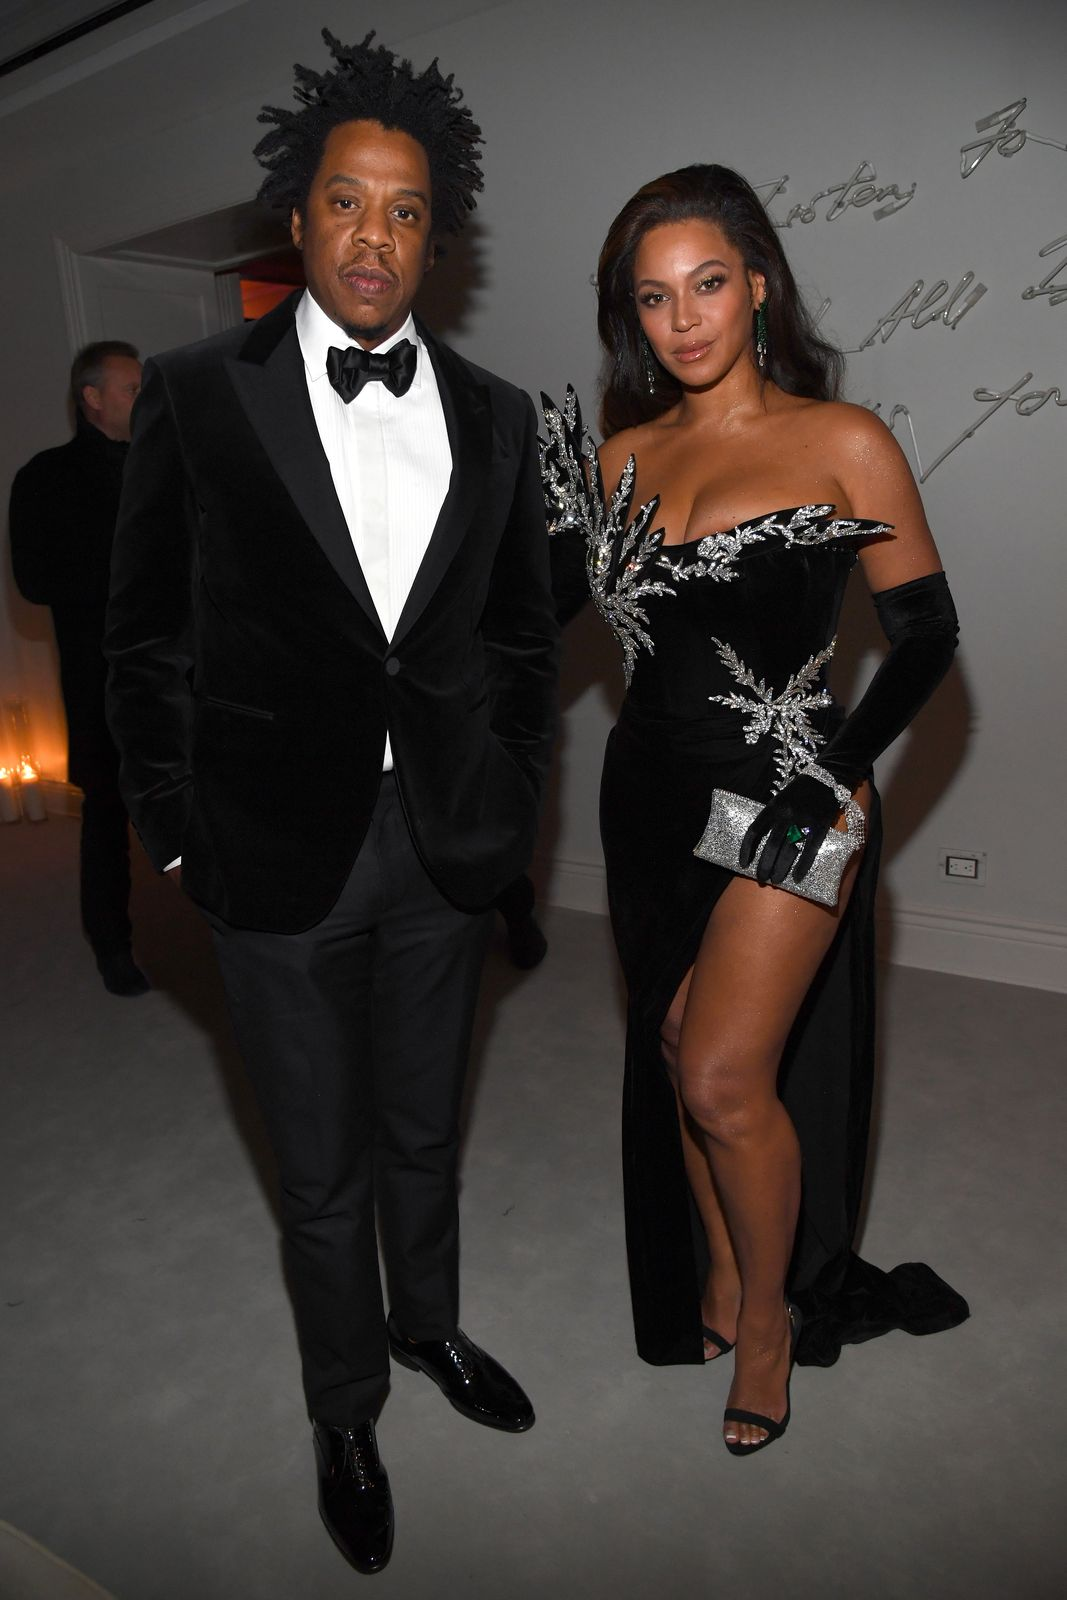 Jay-Z and Beyoncé Knowles-Carter at Sean Combs 50th Birthday Bash presented by Ciroc Vodka on December 14, 2019 | Photo: Getty Images